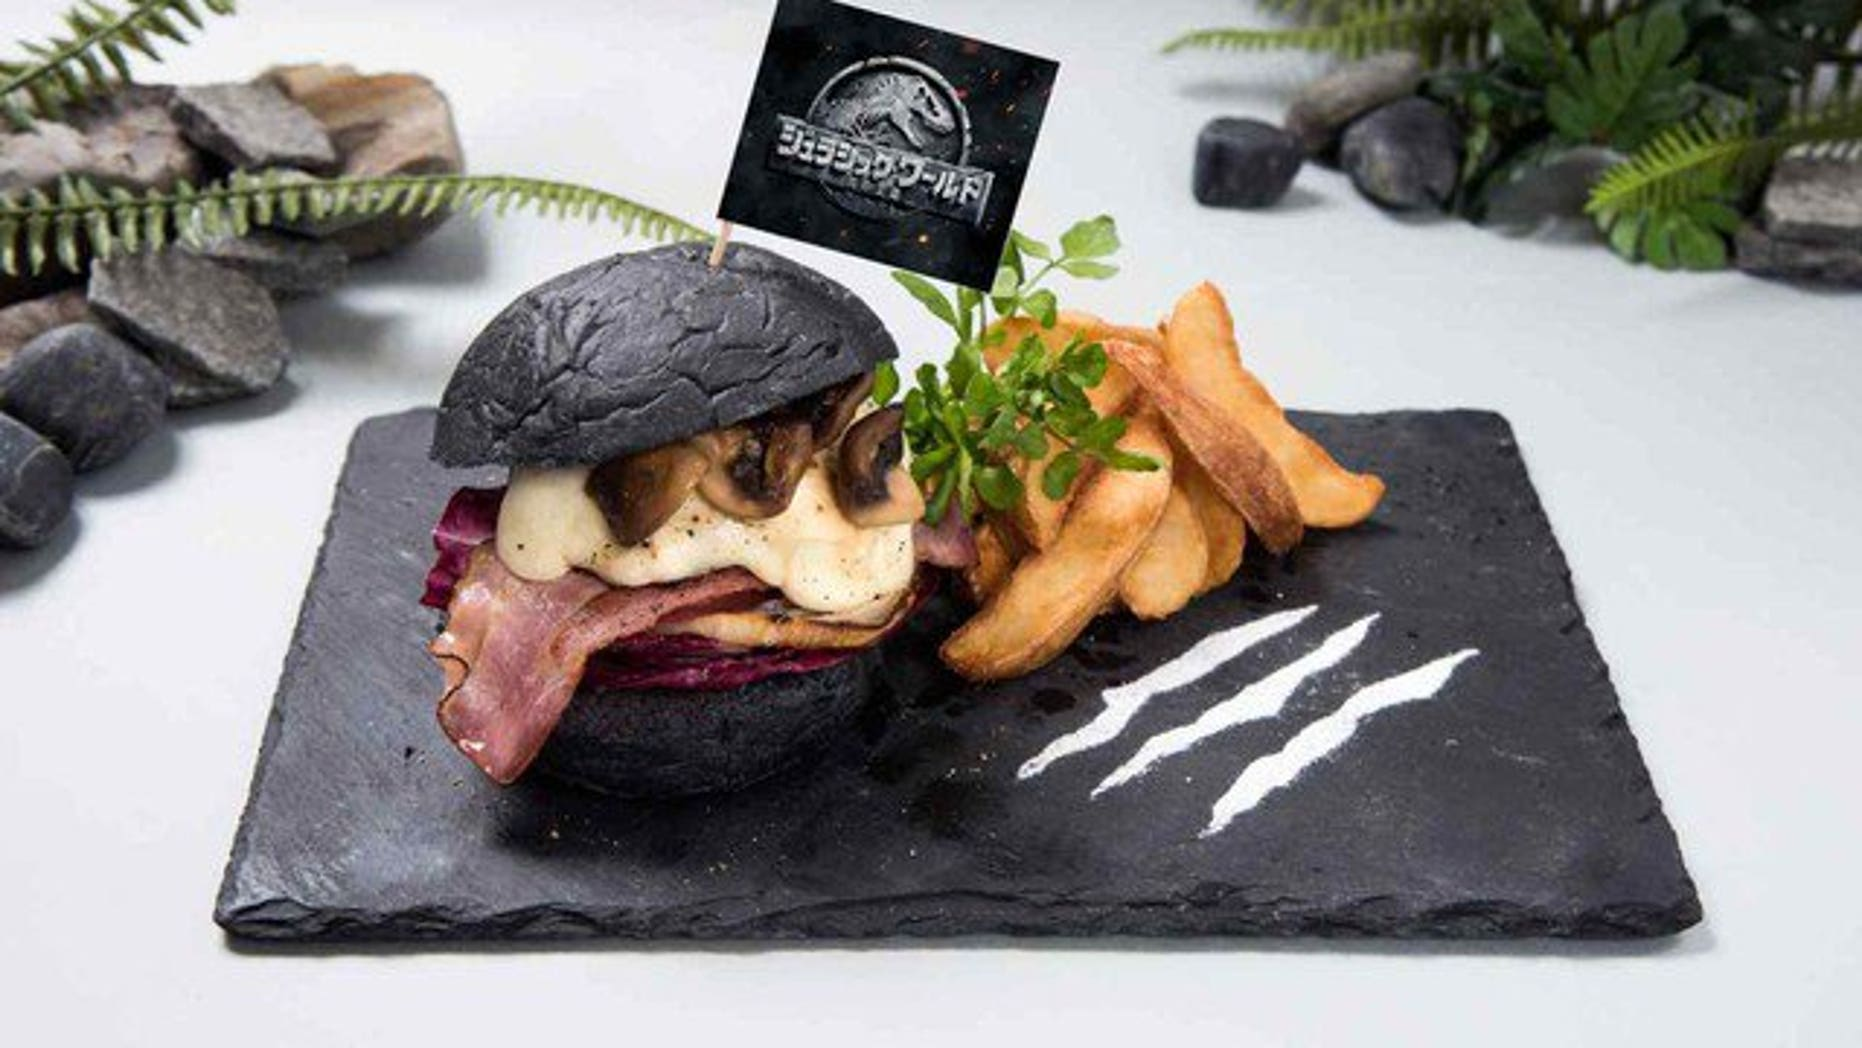 The plate of the Jurassic Burger even looks as if it has been scraped by a raptor.